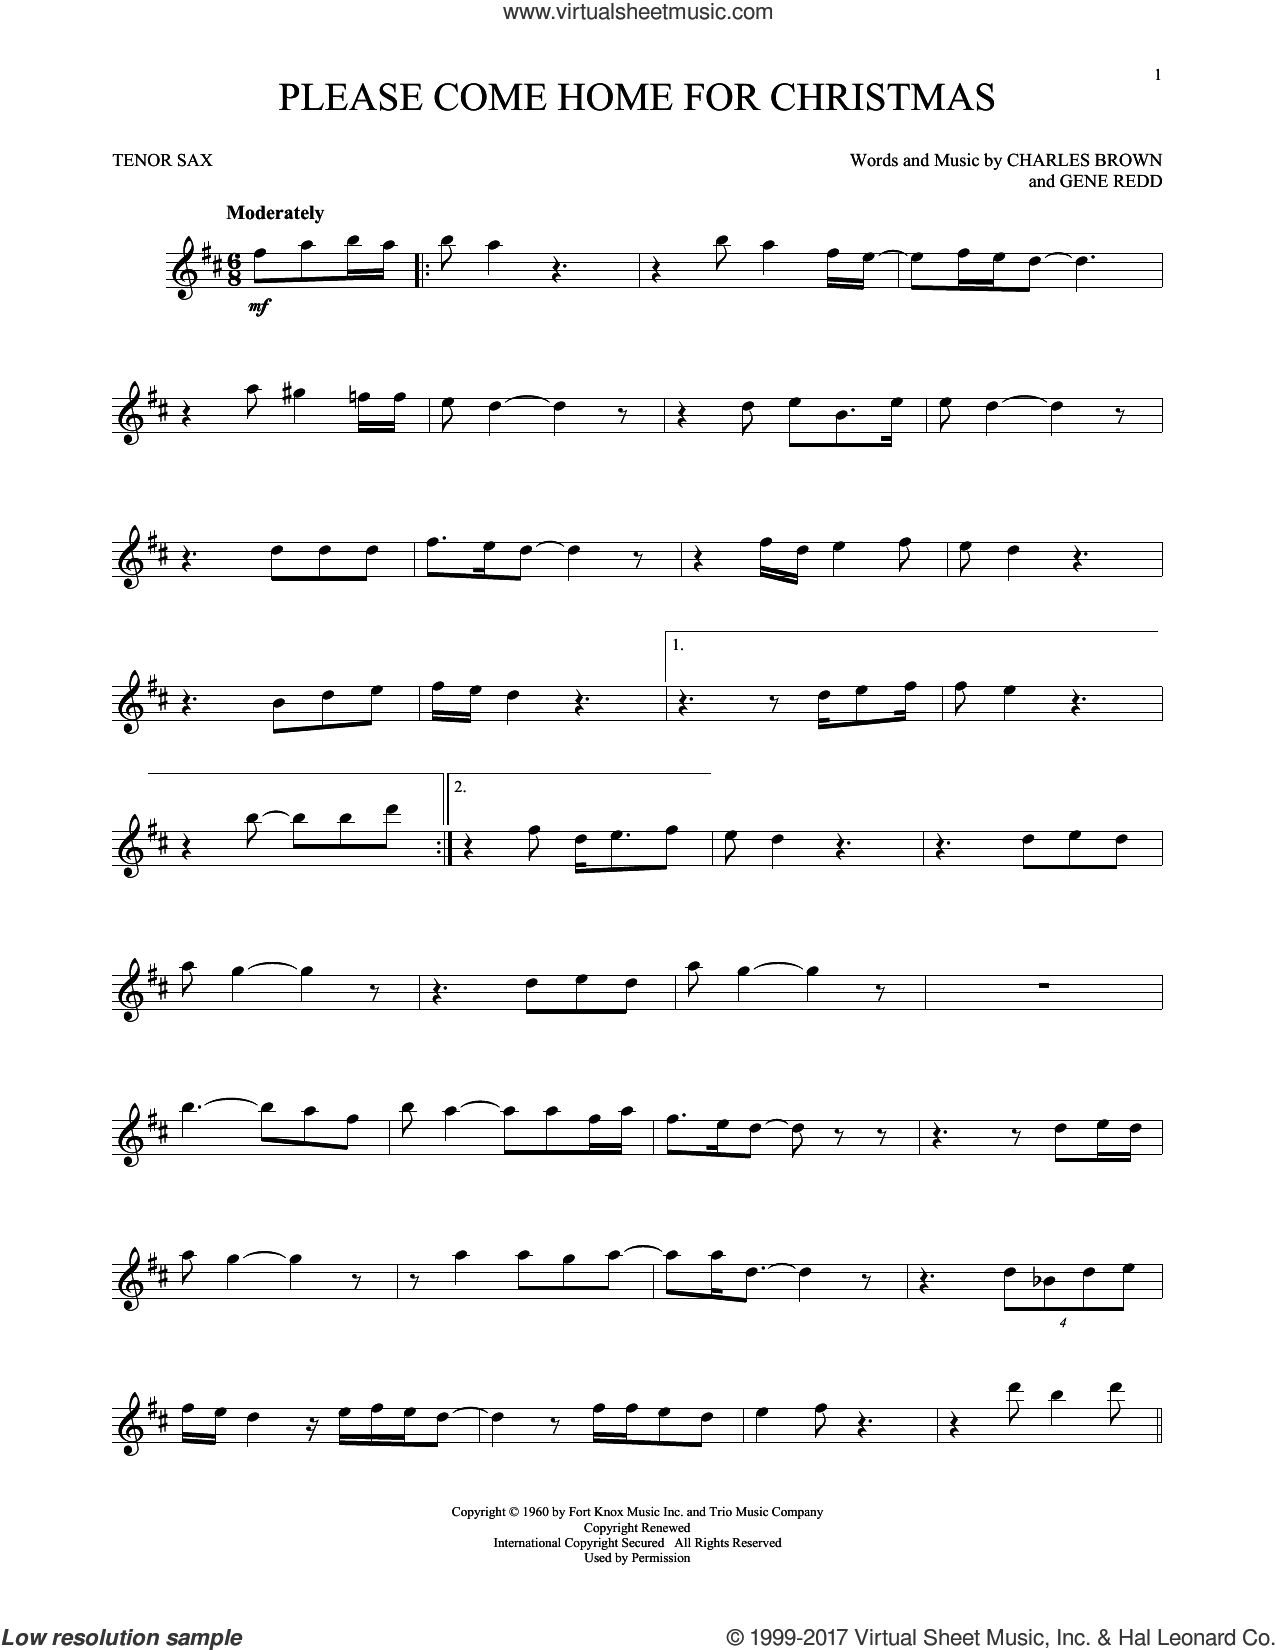 Please Come Home For Christmas sheet music for tenor saxophone solo by Charles Brown and Gene Redd, intermediate. Score Image Preview.